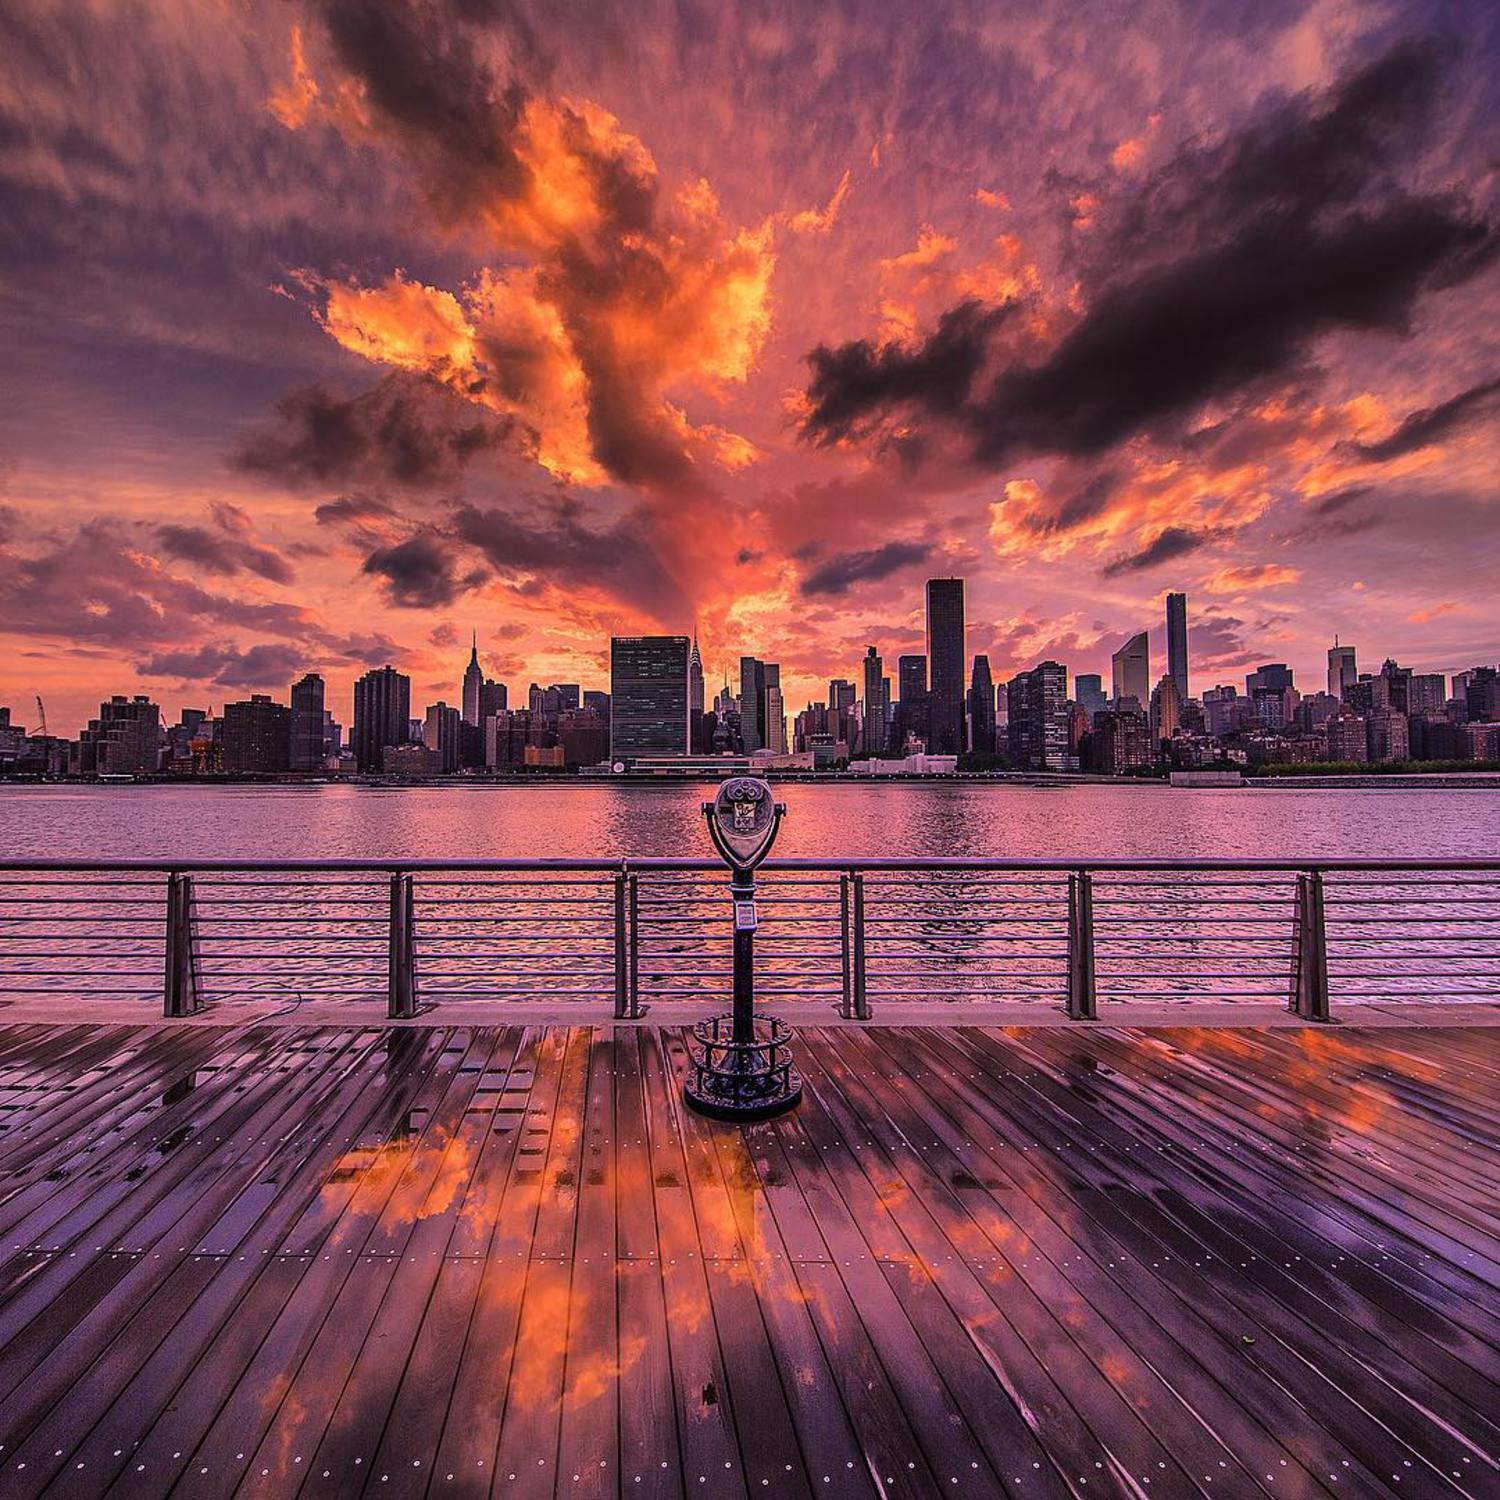 • Fire and Water •  Another from the crazy sunset I got to witness in NYC with @bbsinghphotos and @arin.nyc - not too many more to come but still finding gems to edit 😂👌🇺🇸